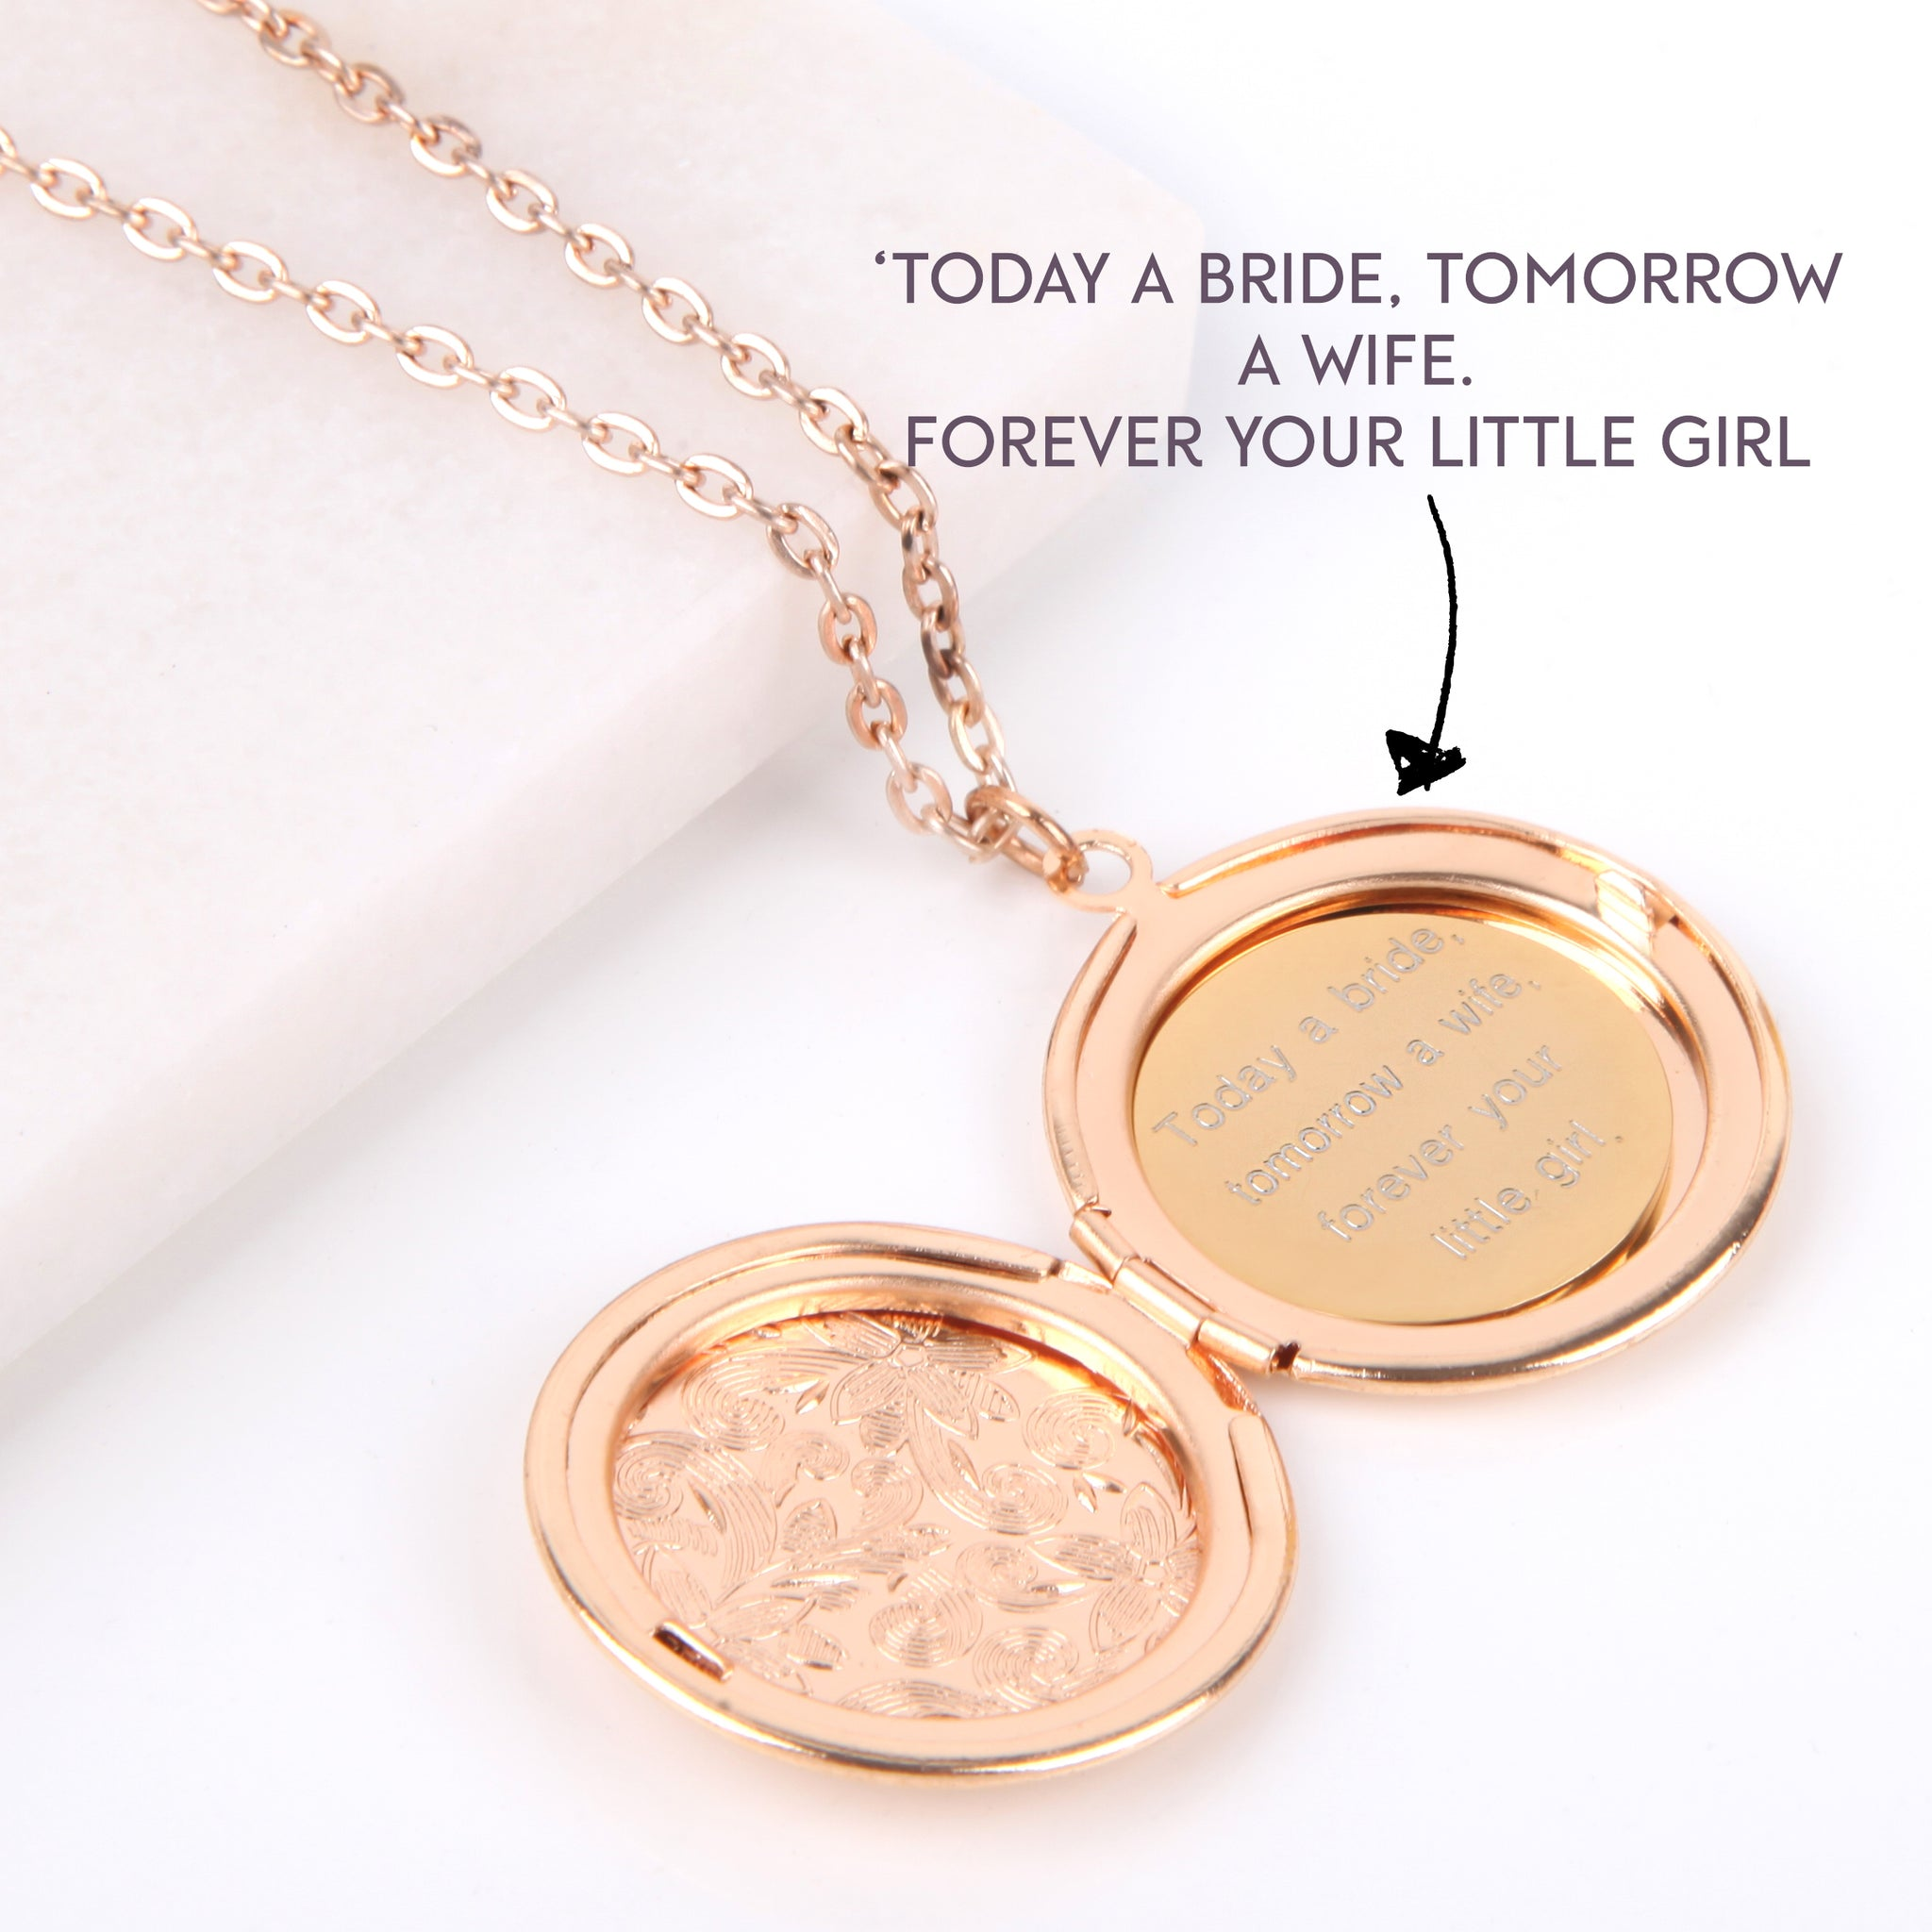 Floral gold hidden message locket engraved wedding round locket necklace - Statement Made Jewellery